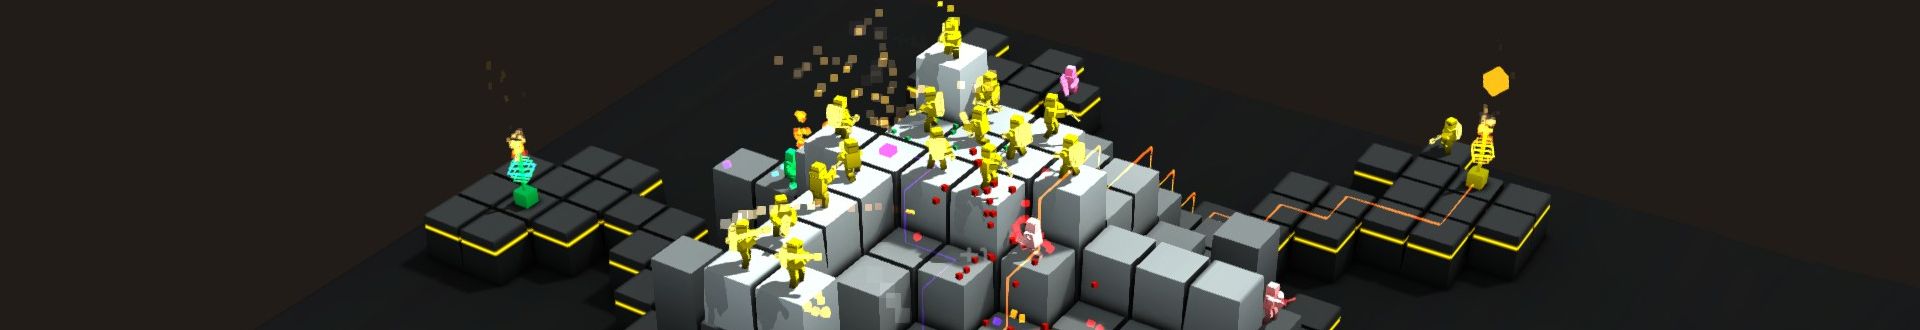 the cube cubemen 2 by 3 sprockets published may 7 2011 ios mac windows